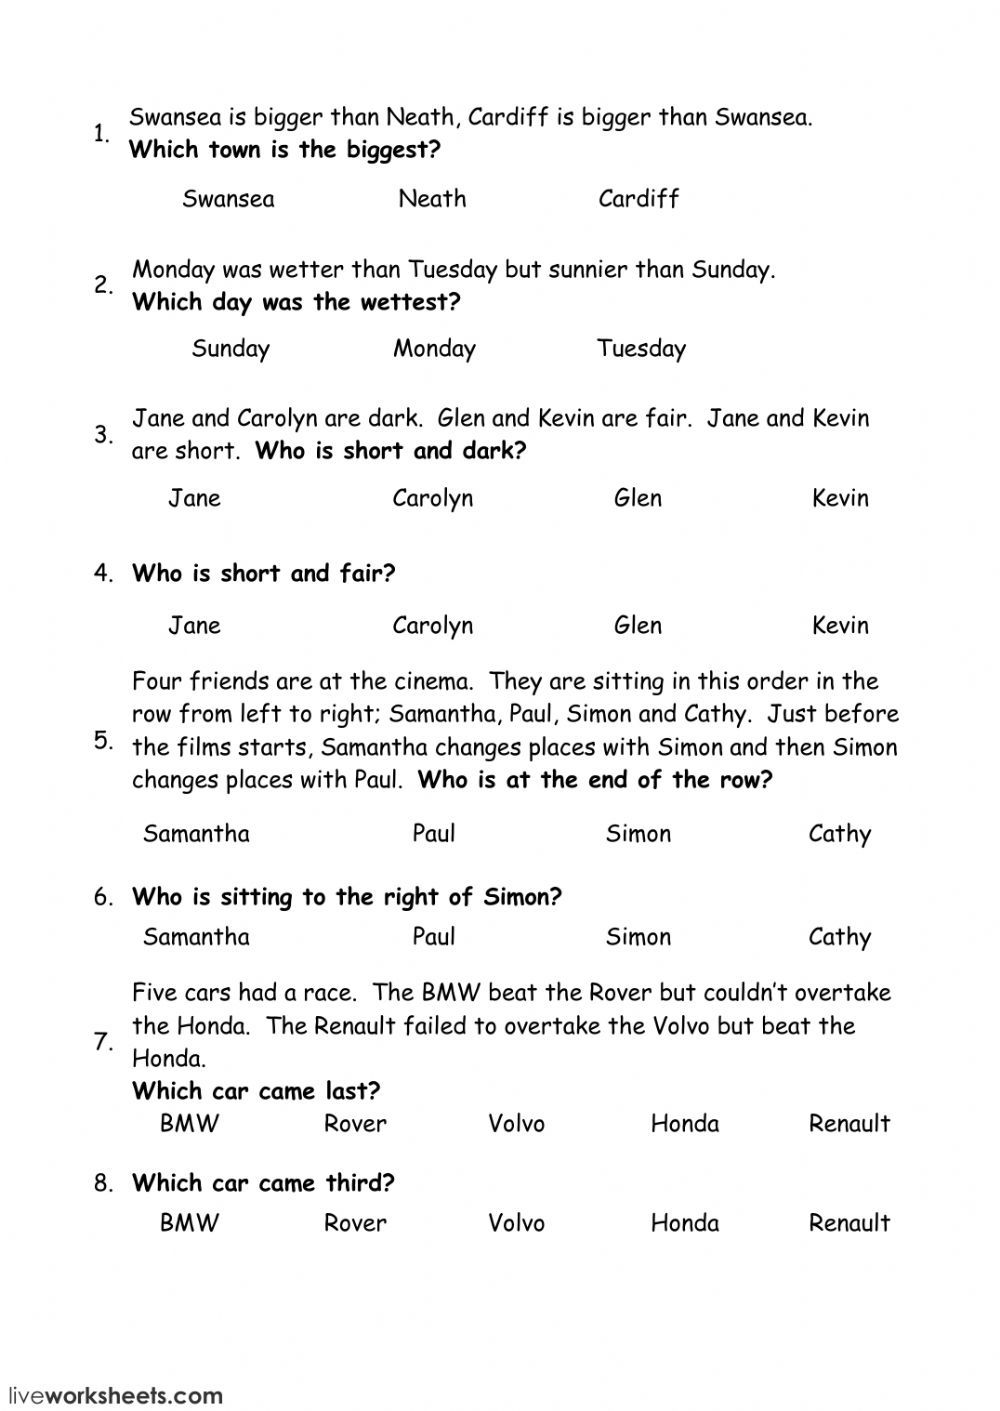 Logic Problems Interactive Worksheet Logic Problems Logic And Critical Thinking Logic Questions [ 1411 x 1000 Pixel ]